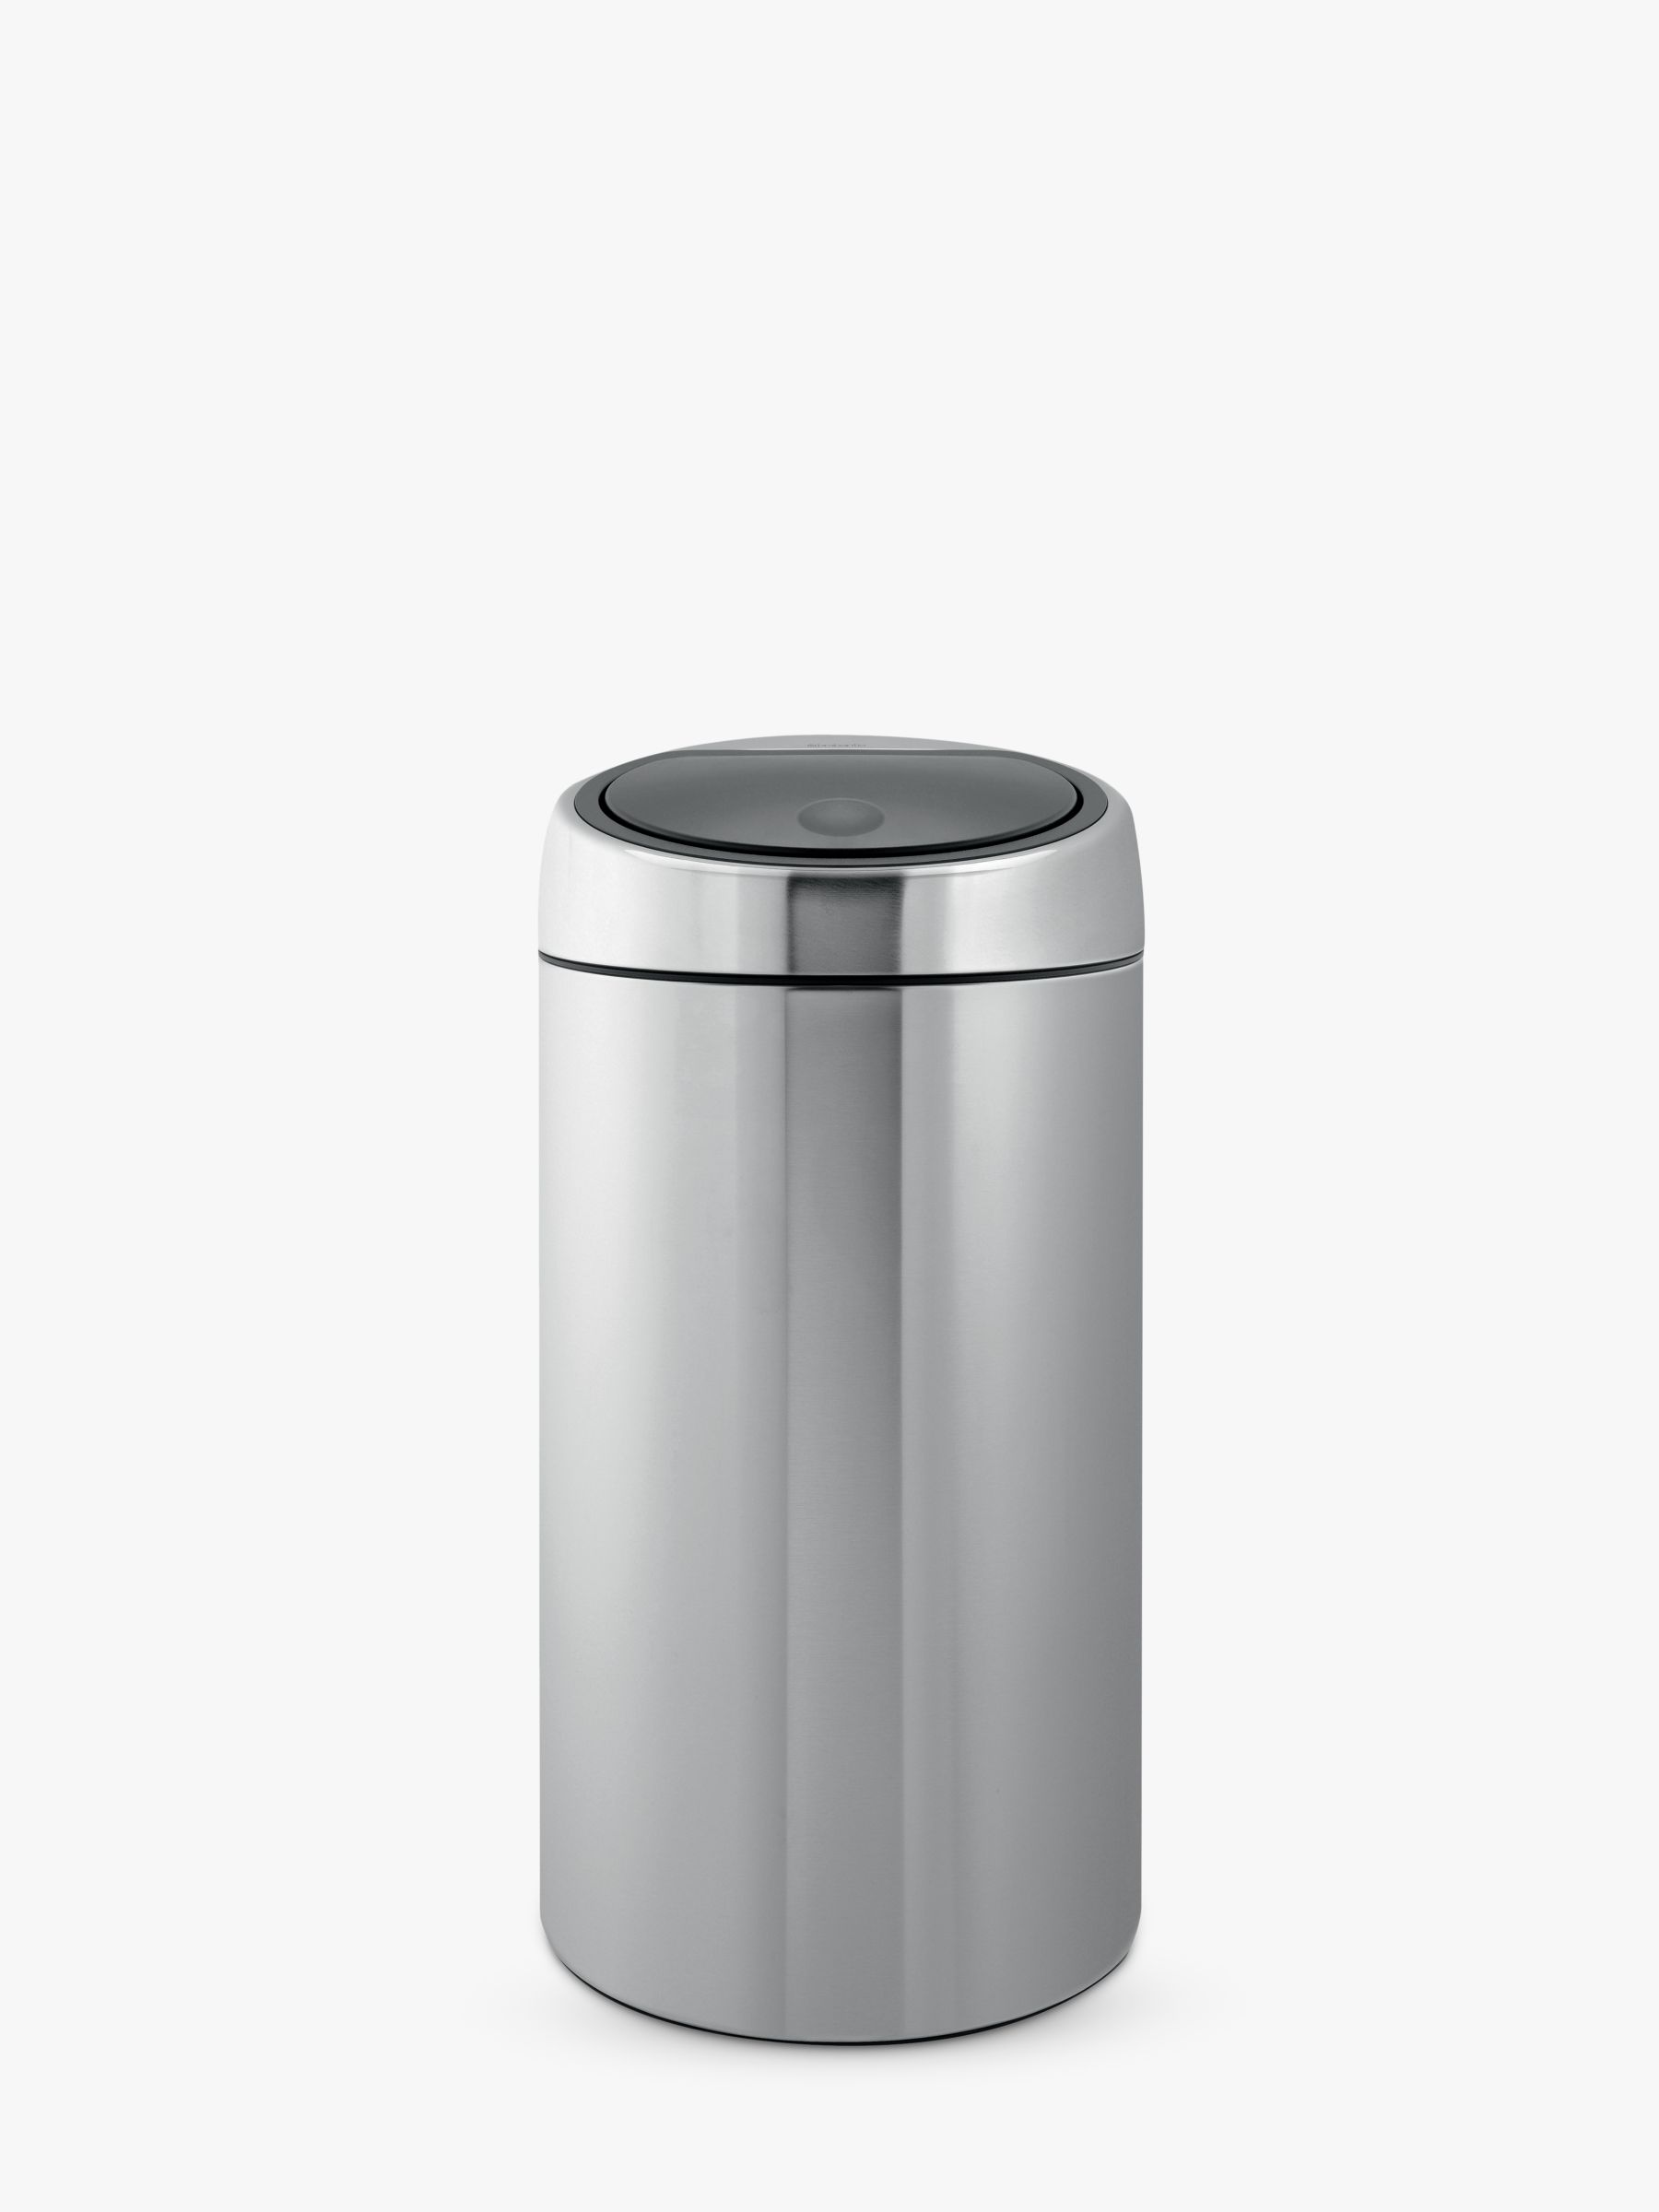 Brabantia Brabantia Twin Recycling Touch Bin, Fingerprint Proof Matt Steel, 20/20L